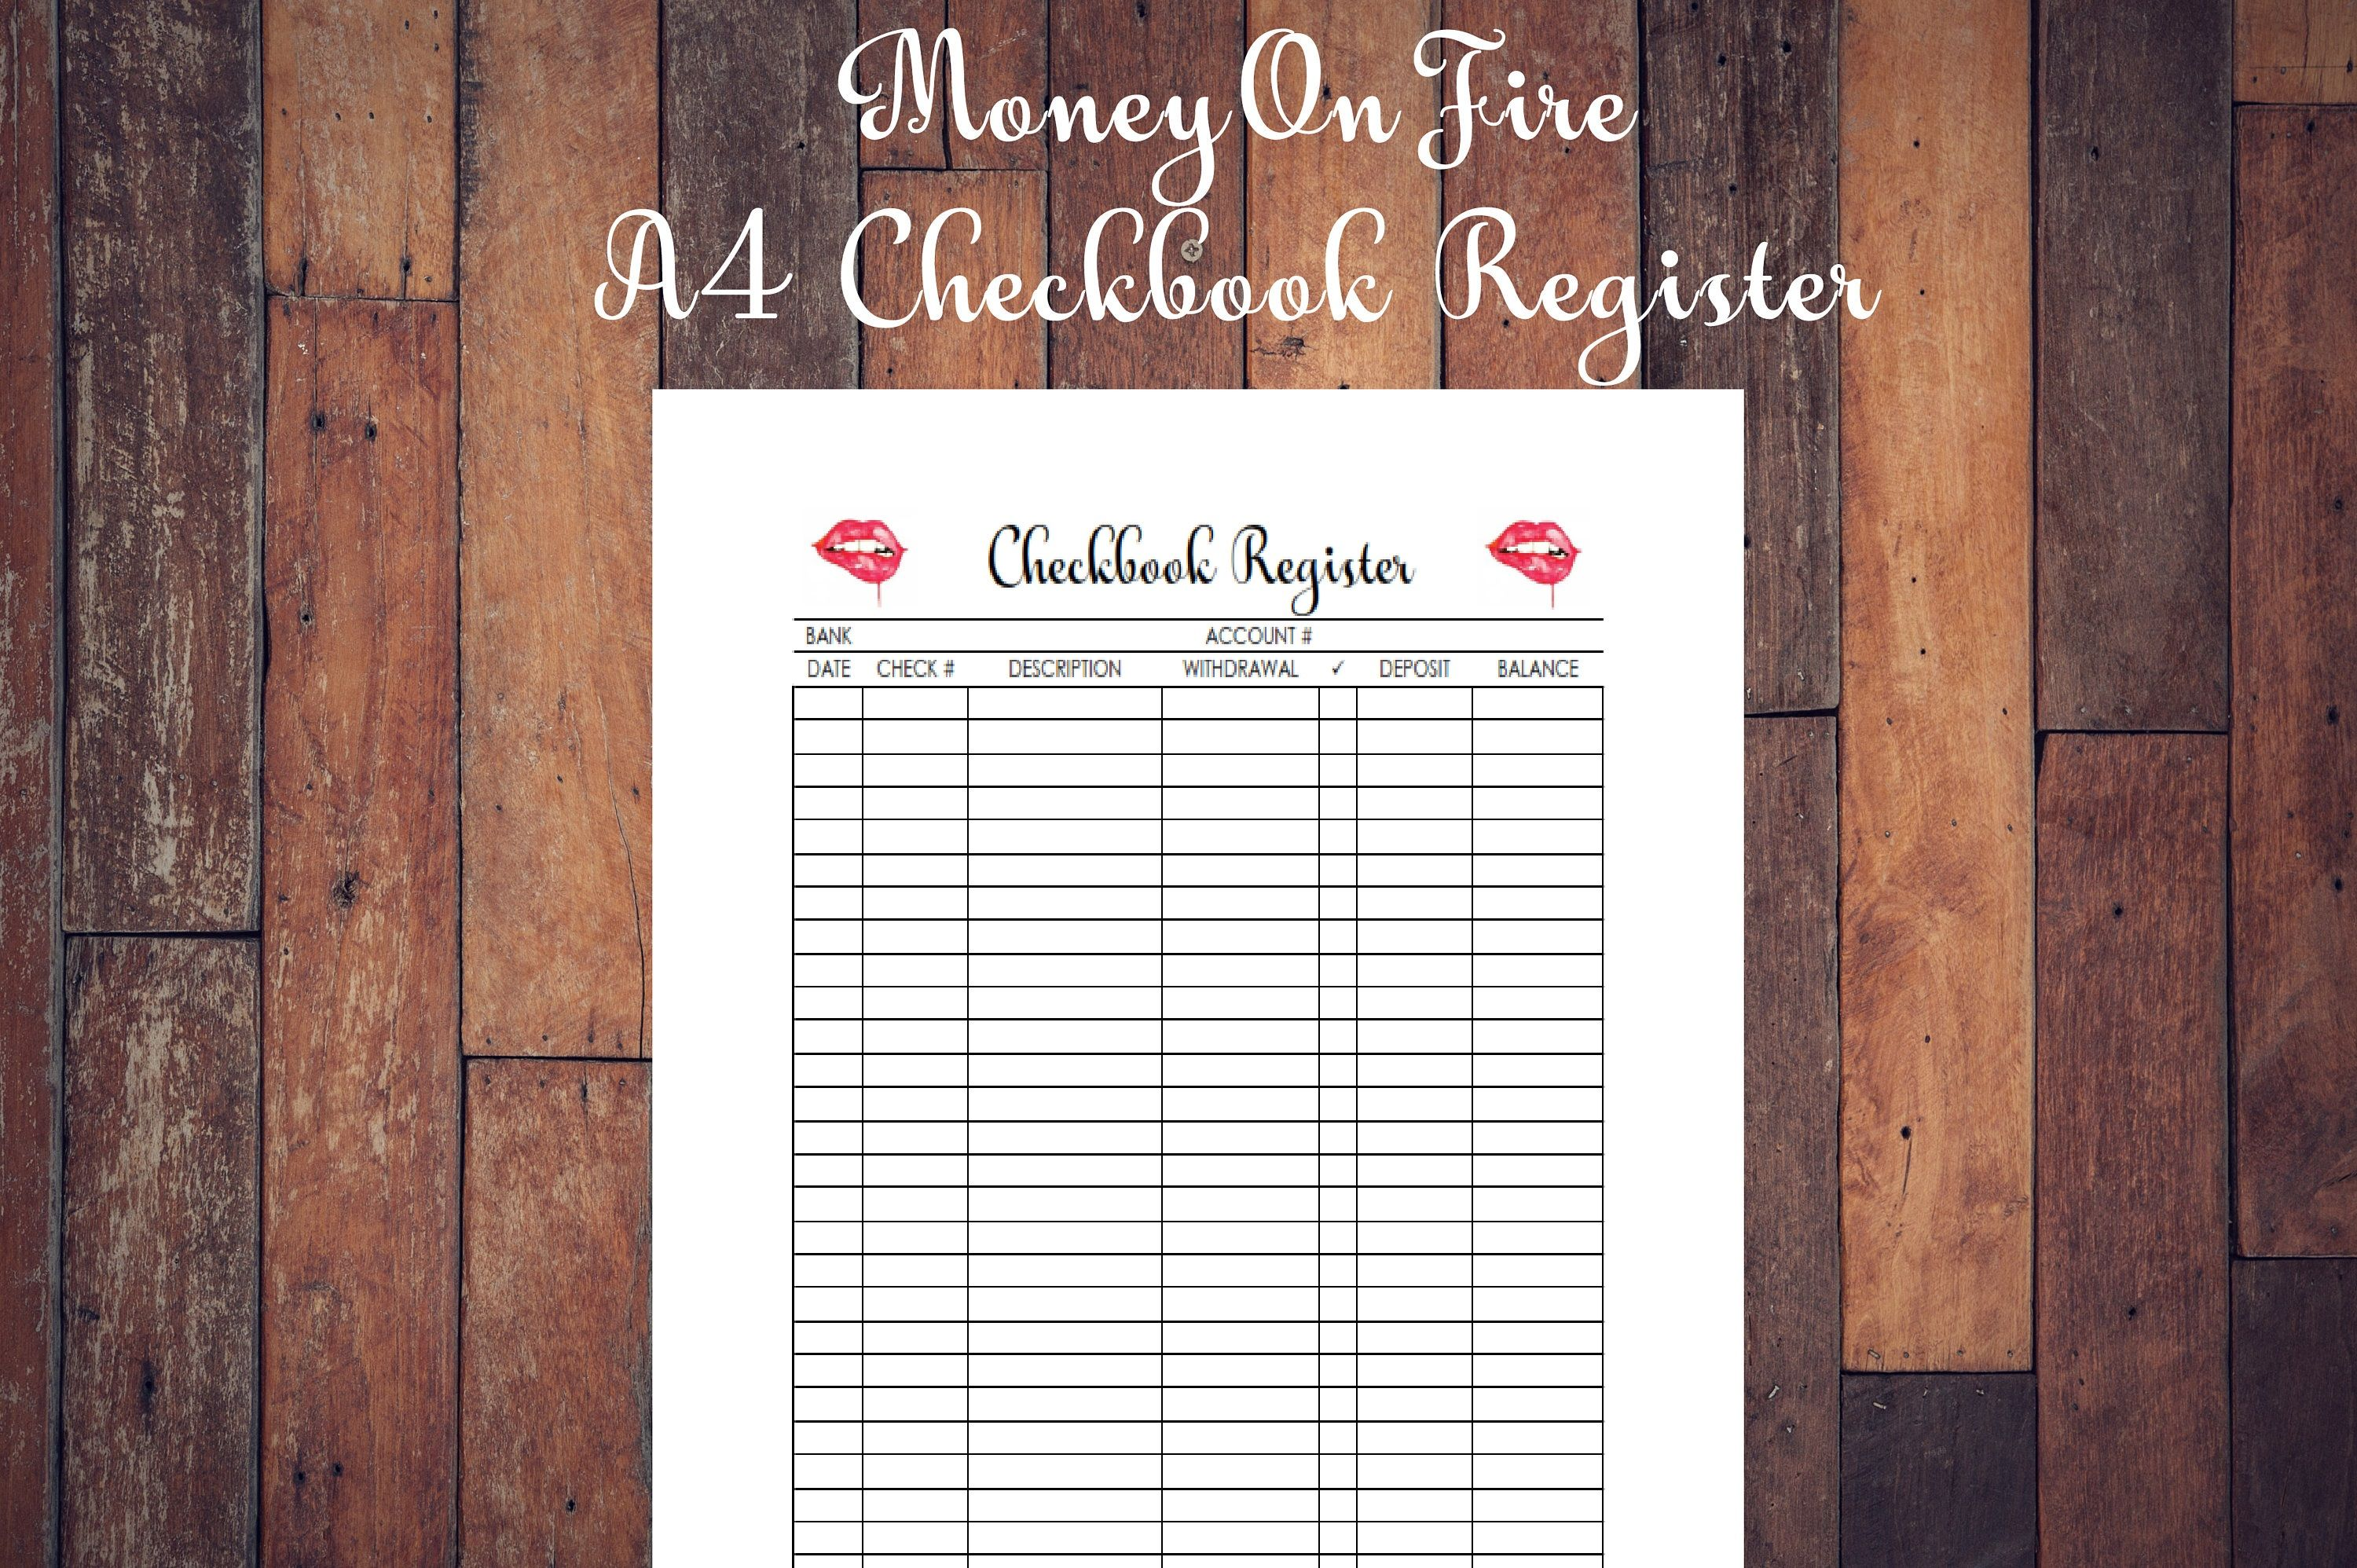 Checkbook Register Printable Etsyfind Etsyfinds